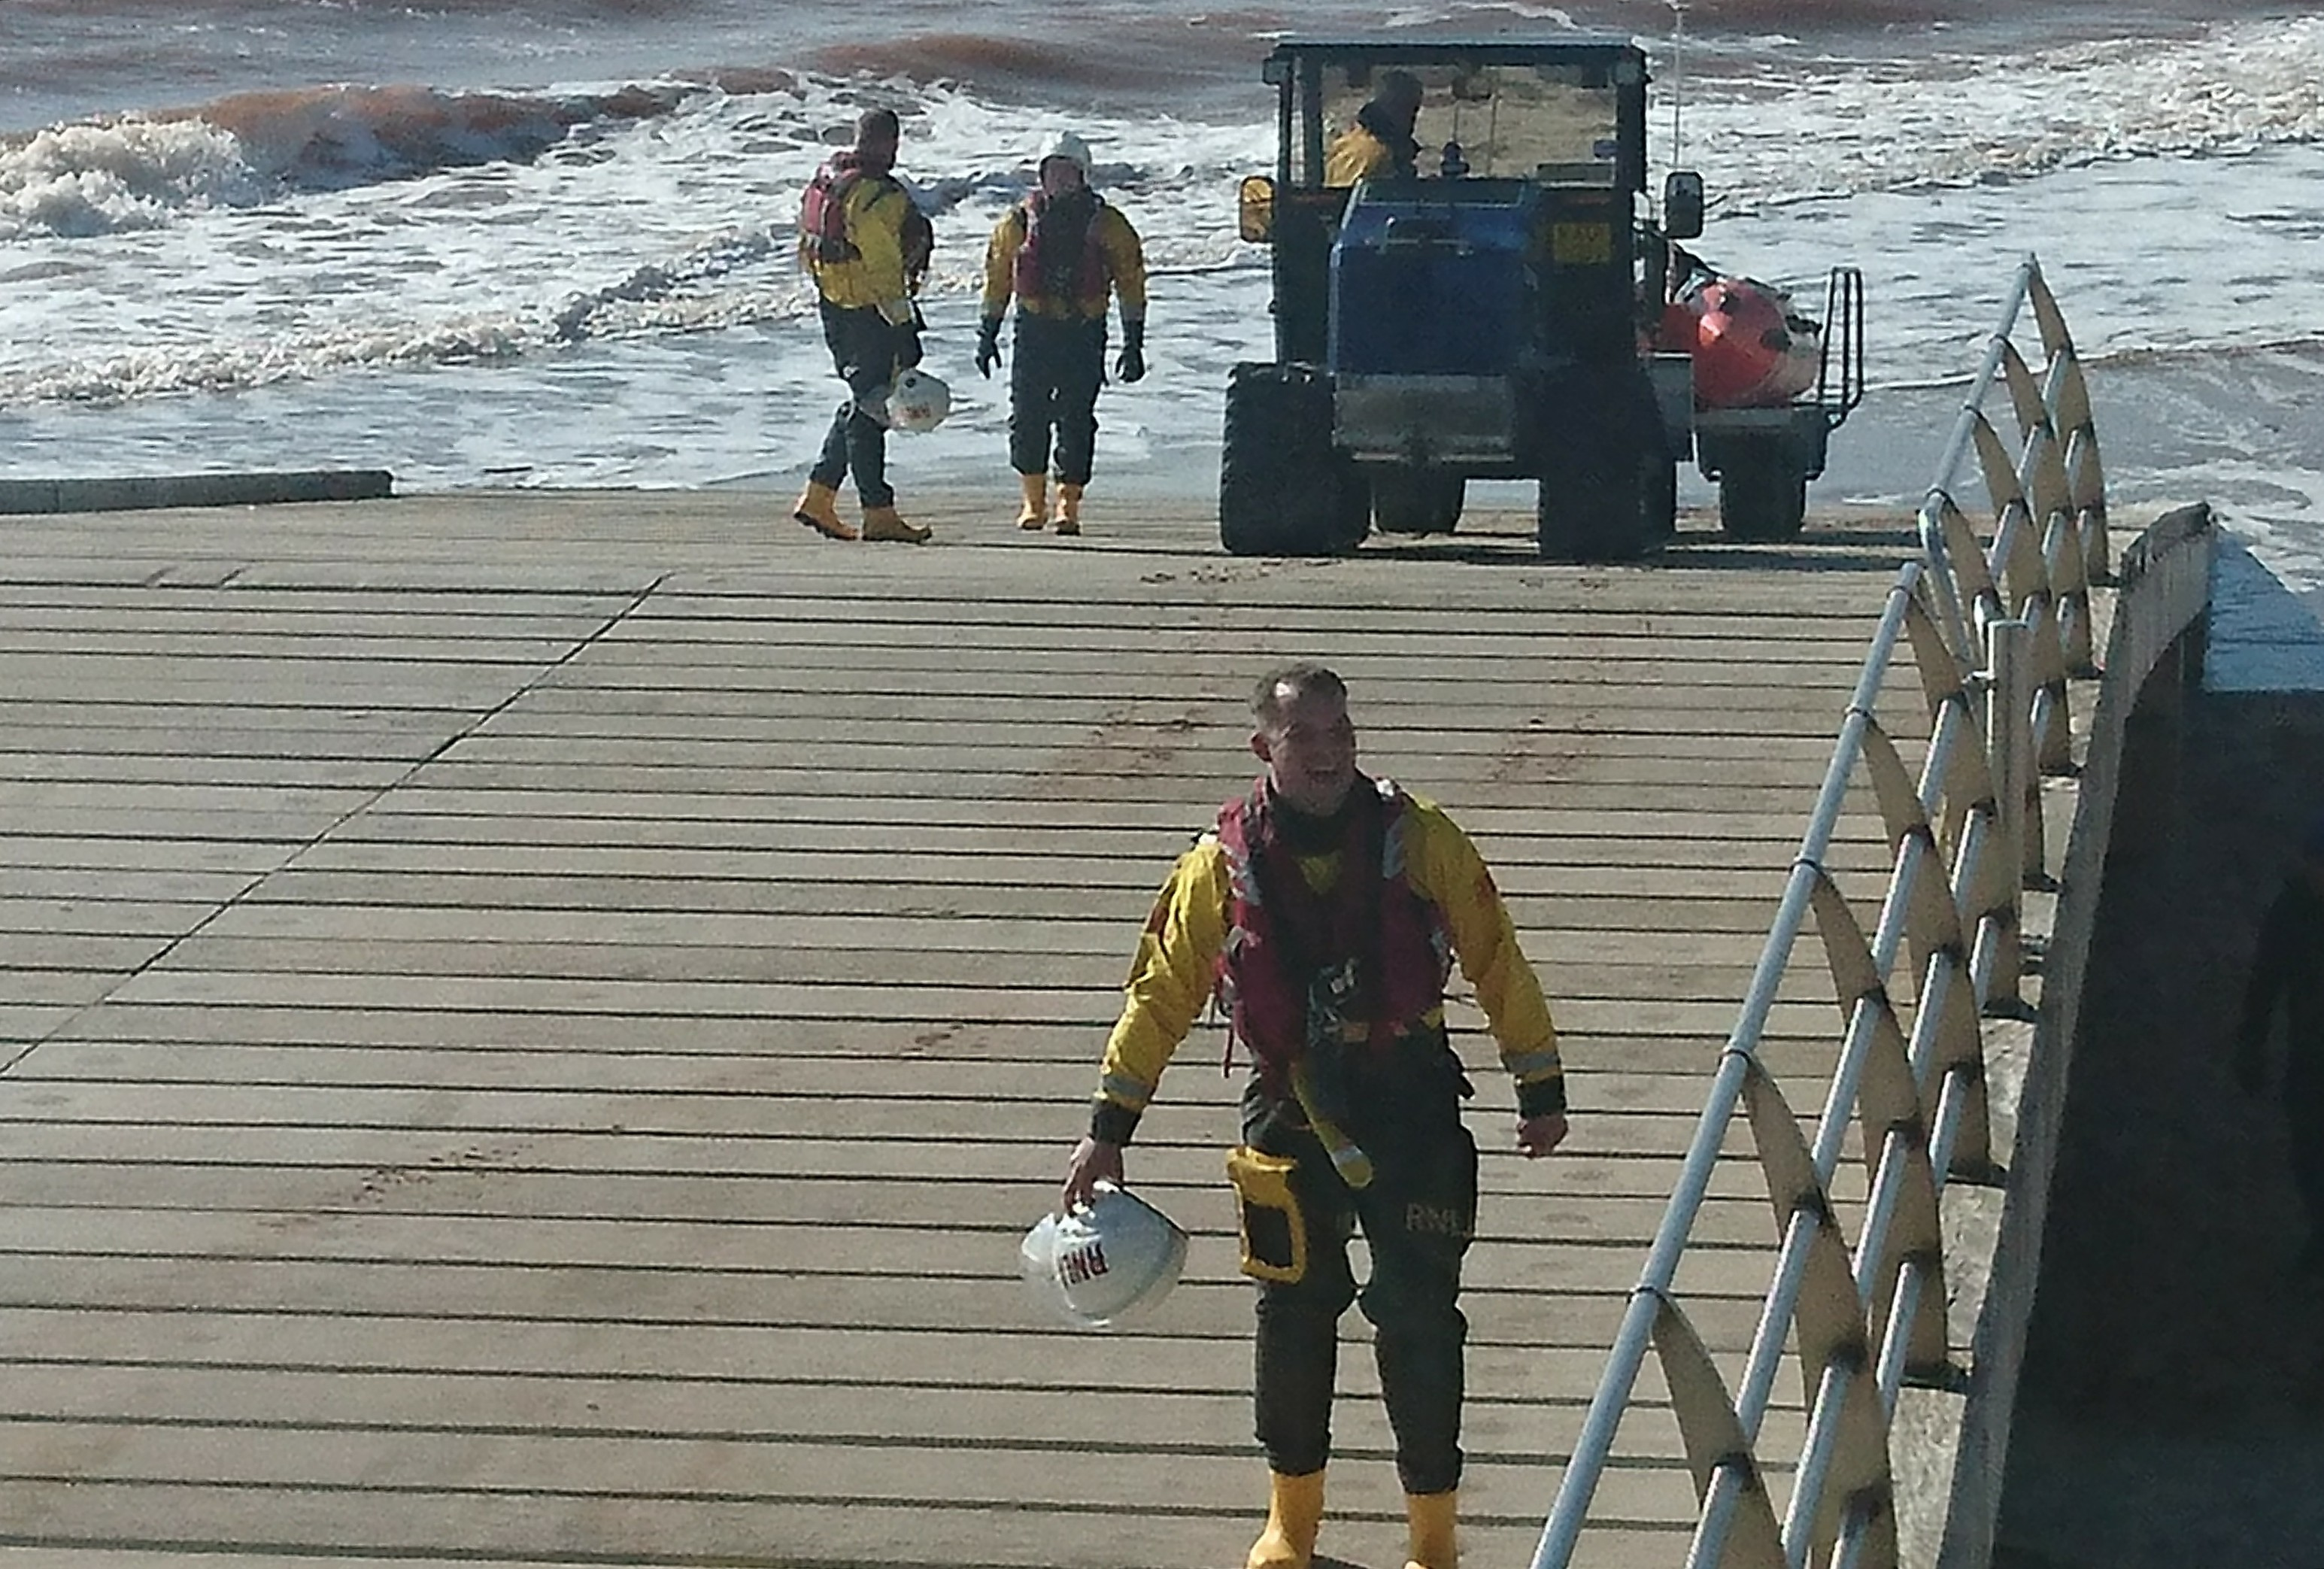 Crew volunteers returning after kite-surfer rescue with inshore lifeboat George Bearman II